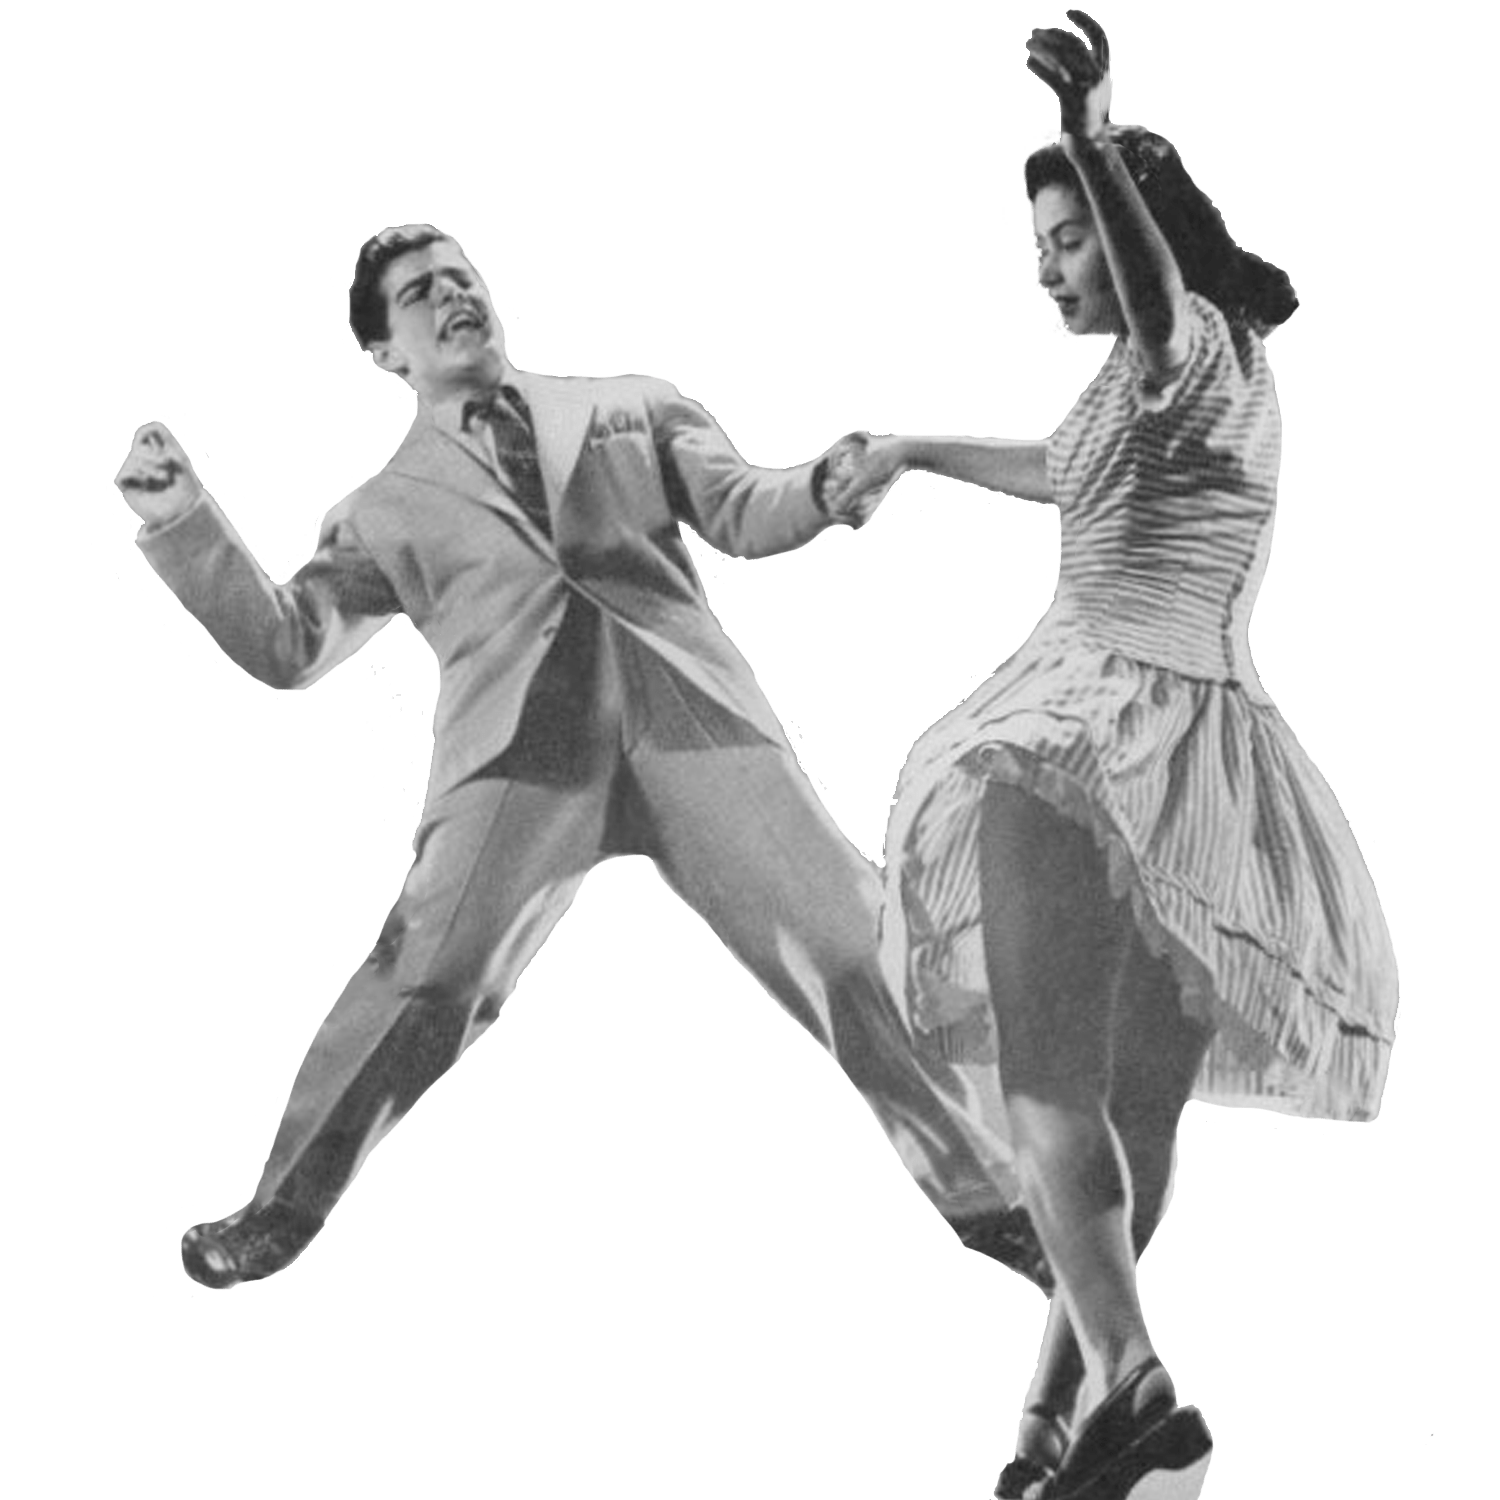 People dance png. Vintage dancers transparent stickpng